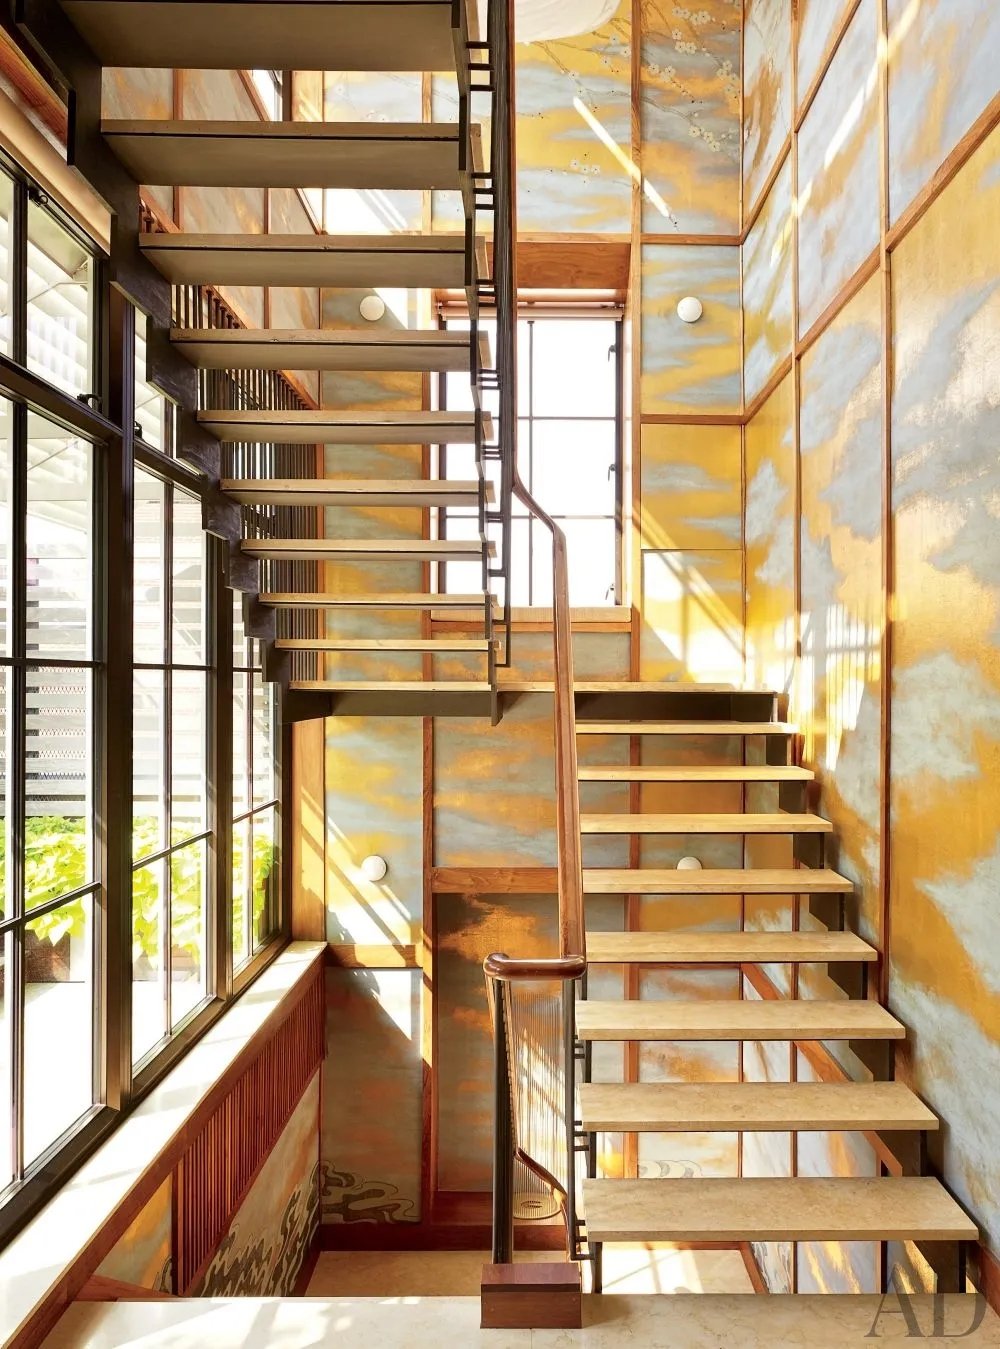 Types Of Stairs Explained Architectural Digest   Duplex House Staircase Wall Design   Tv Cabinet   Stair Wall Paint   Living Room Staircase   Decoration   Exterior Staircase